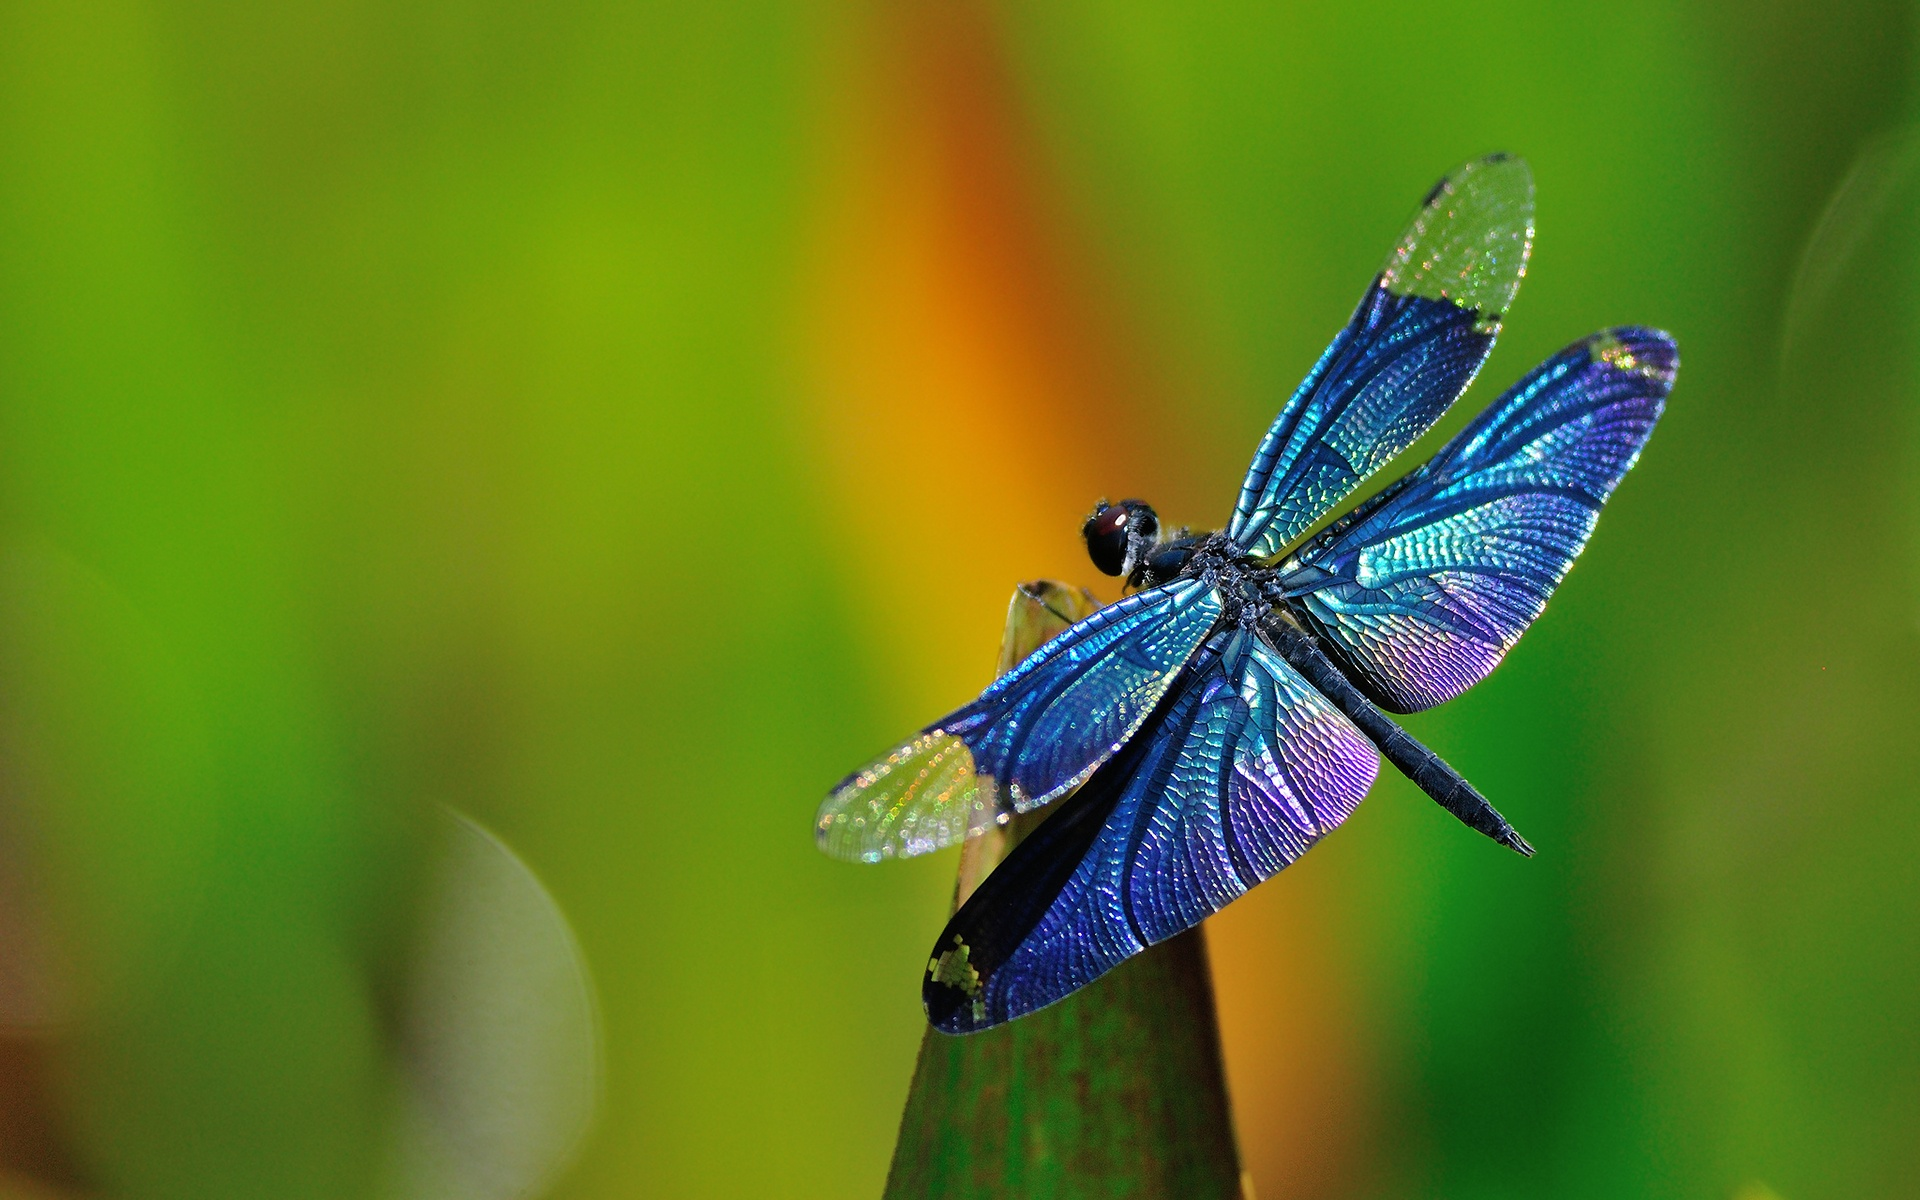 cool dragonfly wallpaper | 1920x1200 | #82417